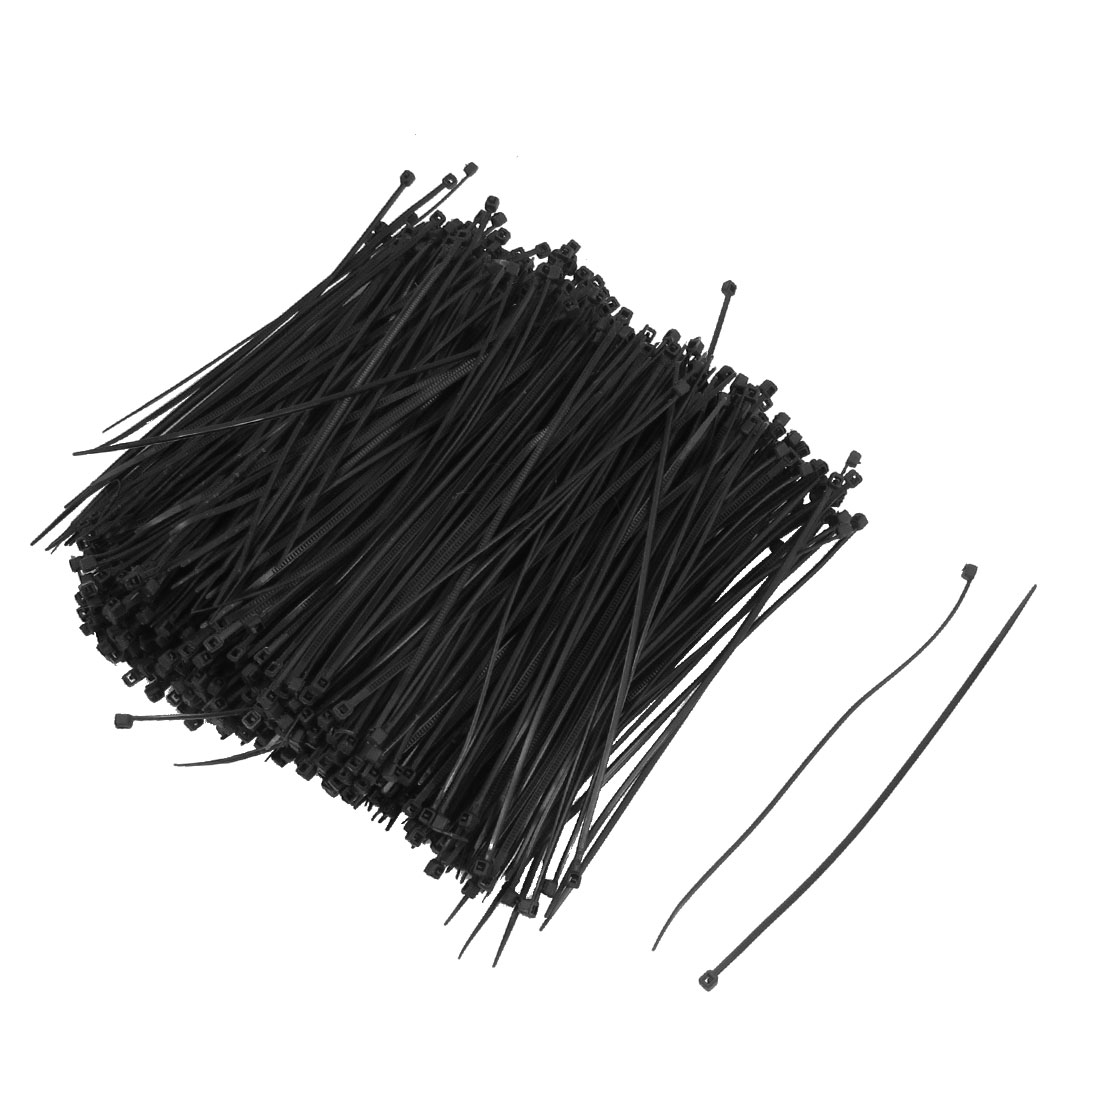 "1000 Pcs 140mm x 2mm Self Locking Wire Cable Zip Tie 5.5"" Black"